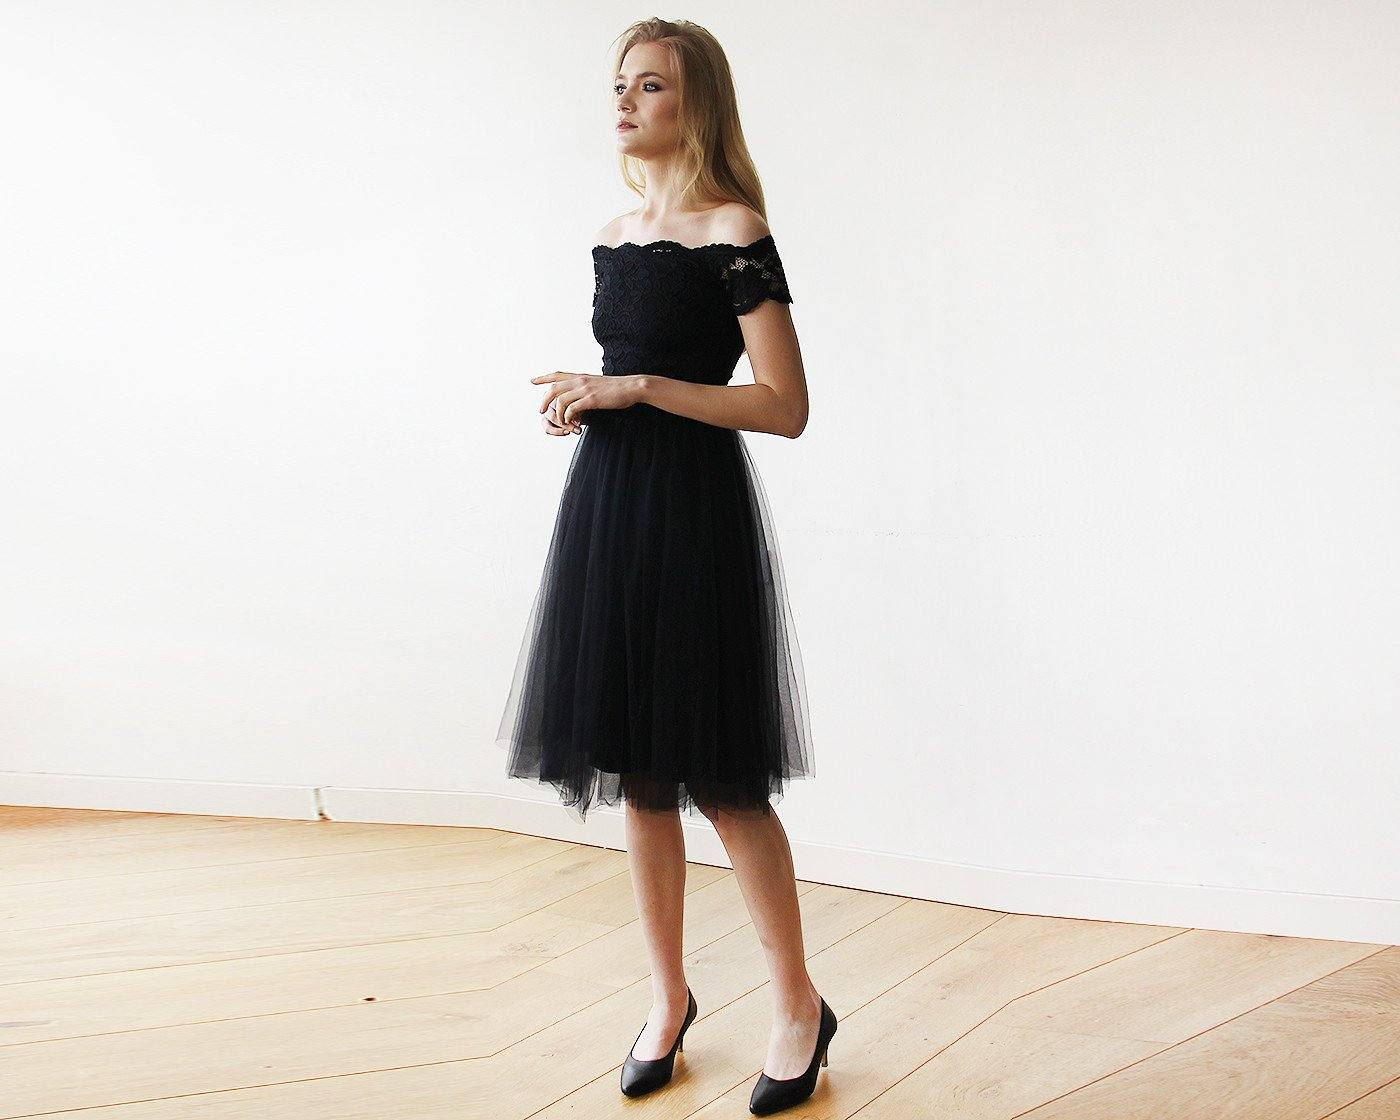 Sale Black Off-the-Shoulders Tulle & Lace Midi Short Sleeves Dress SALE 1153 - Blushfashion